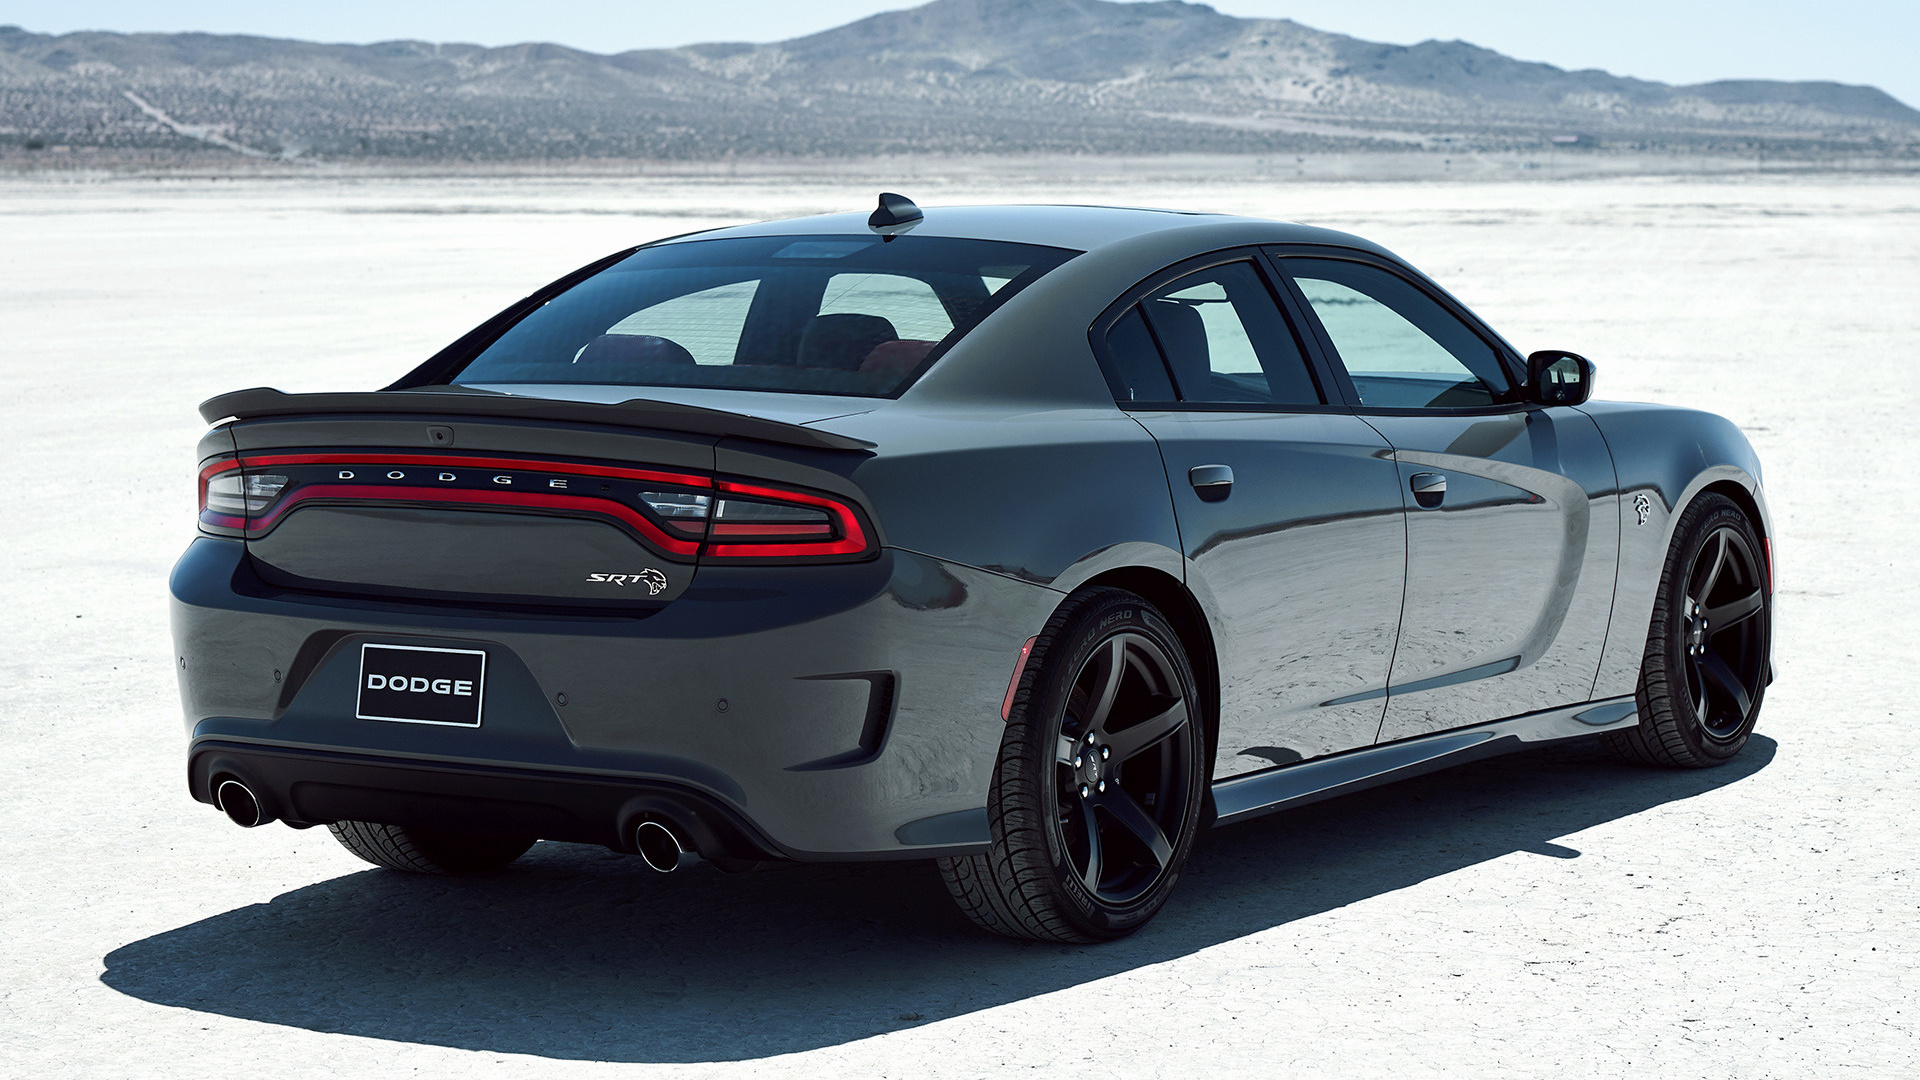 Dodge Charger Car Wallpapers 2019 Dodge Charger Srt Hellcat Wallpapers And Hd Images